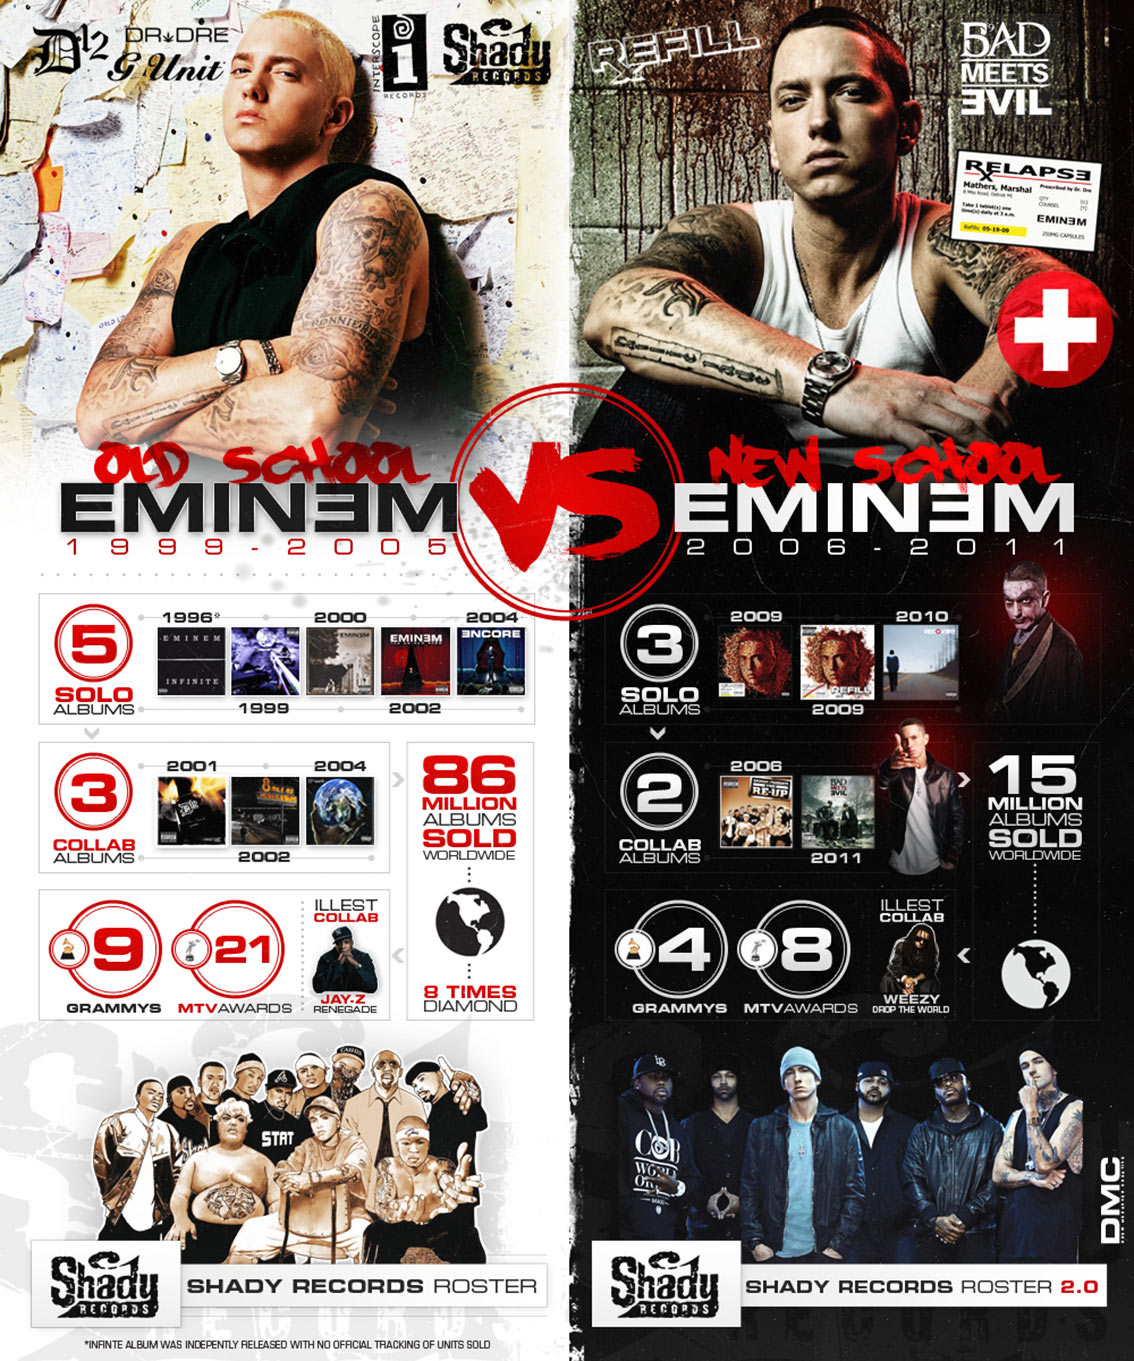 Eminem Music Career Timeline - Rap Music Infographic